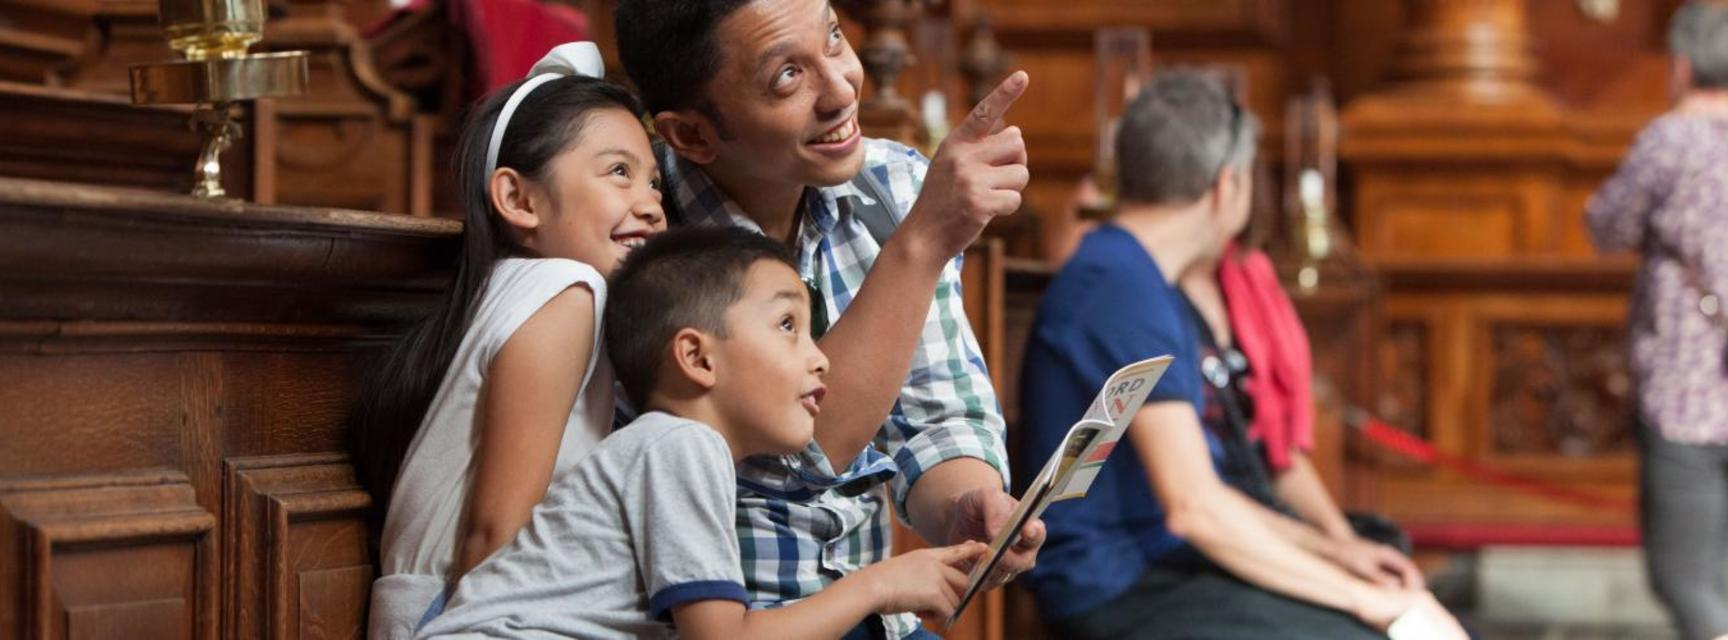 Photo of a family sitting inside the Sheldonian theatre, holding the Oxford Open Doors brochure and pointing, looking and smiling at the ceiling